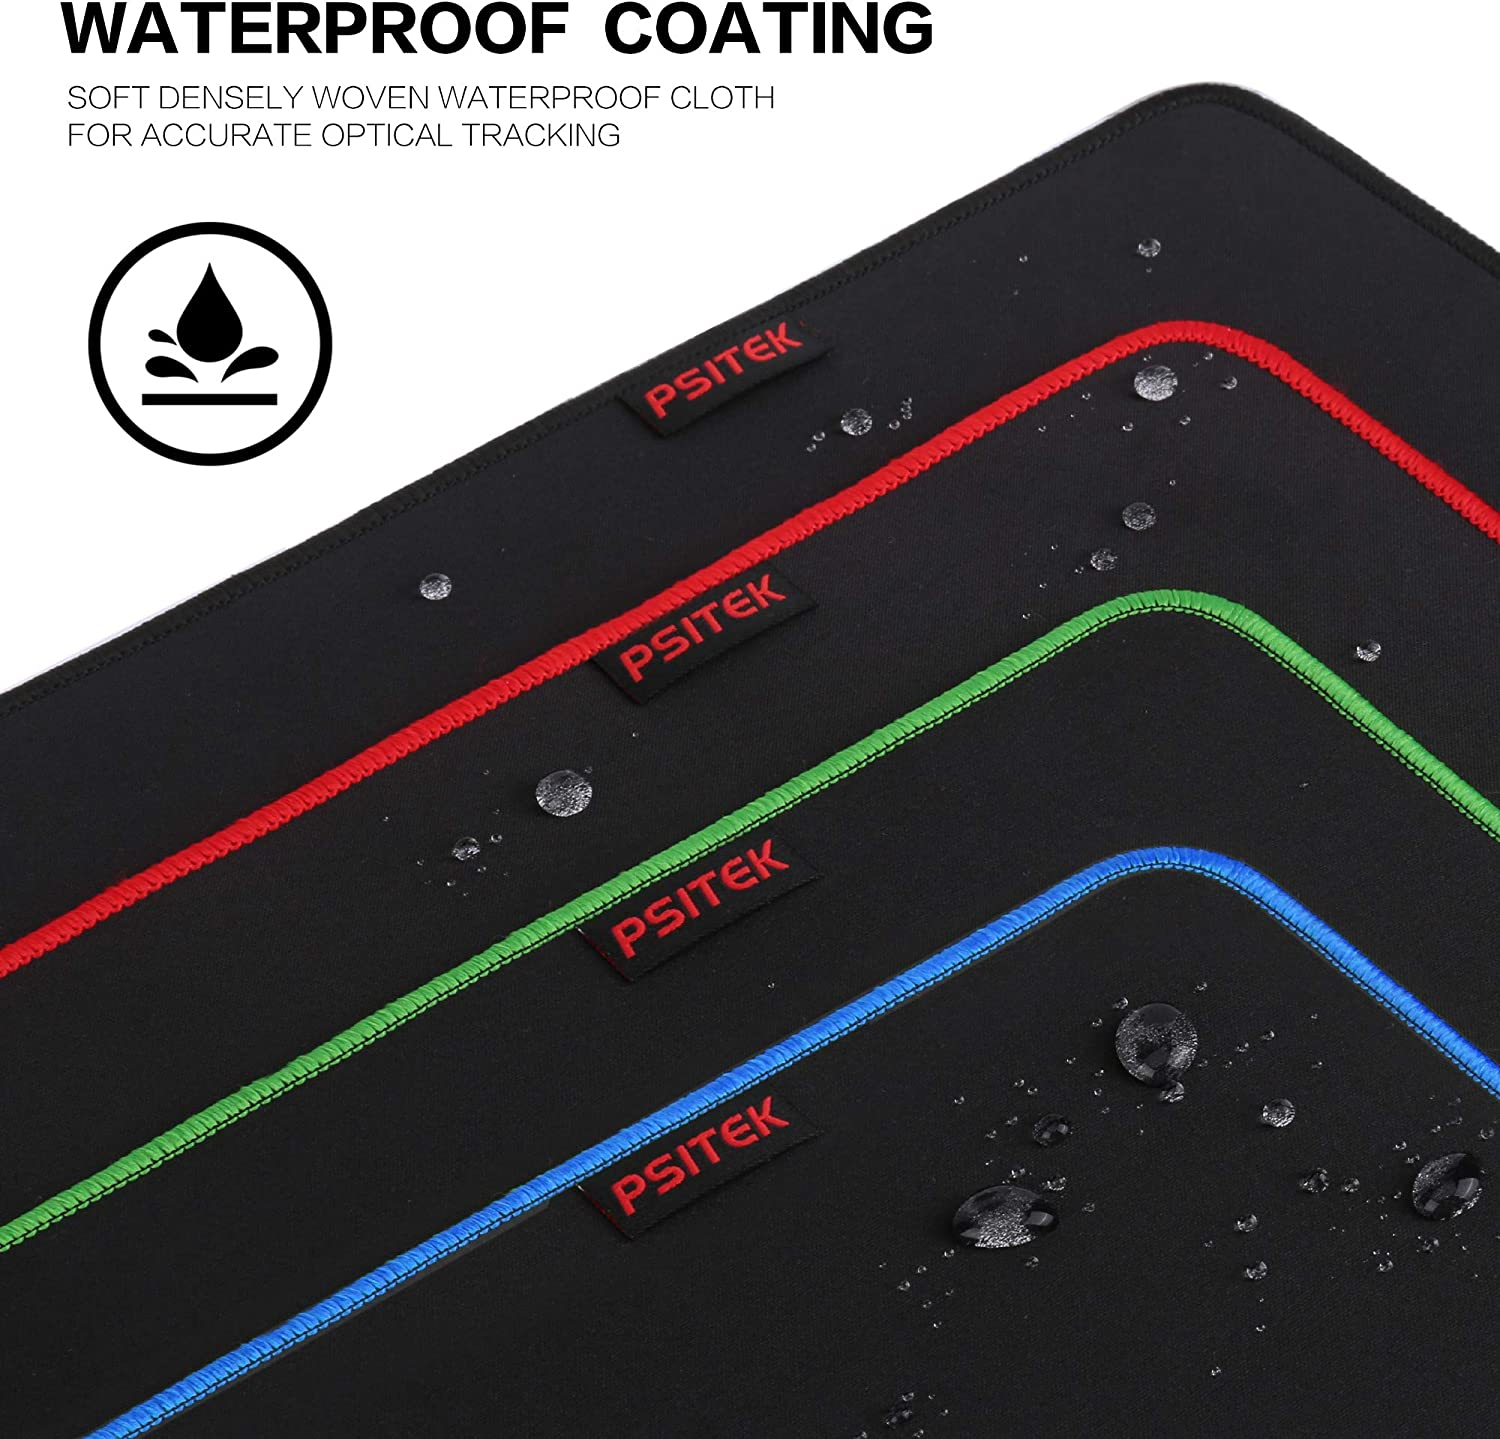 Durable Stitched Anti-Fray Edges Black Red and Green 3 Packs Psitek 10x8.5 Inches Large Gaming Mouse Pad Mousepad,Waterproof Cloth Surface Optimized for Precision